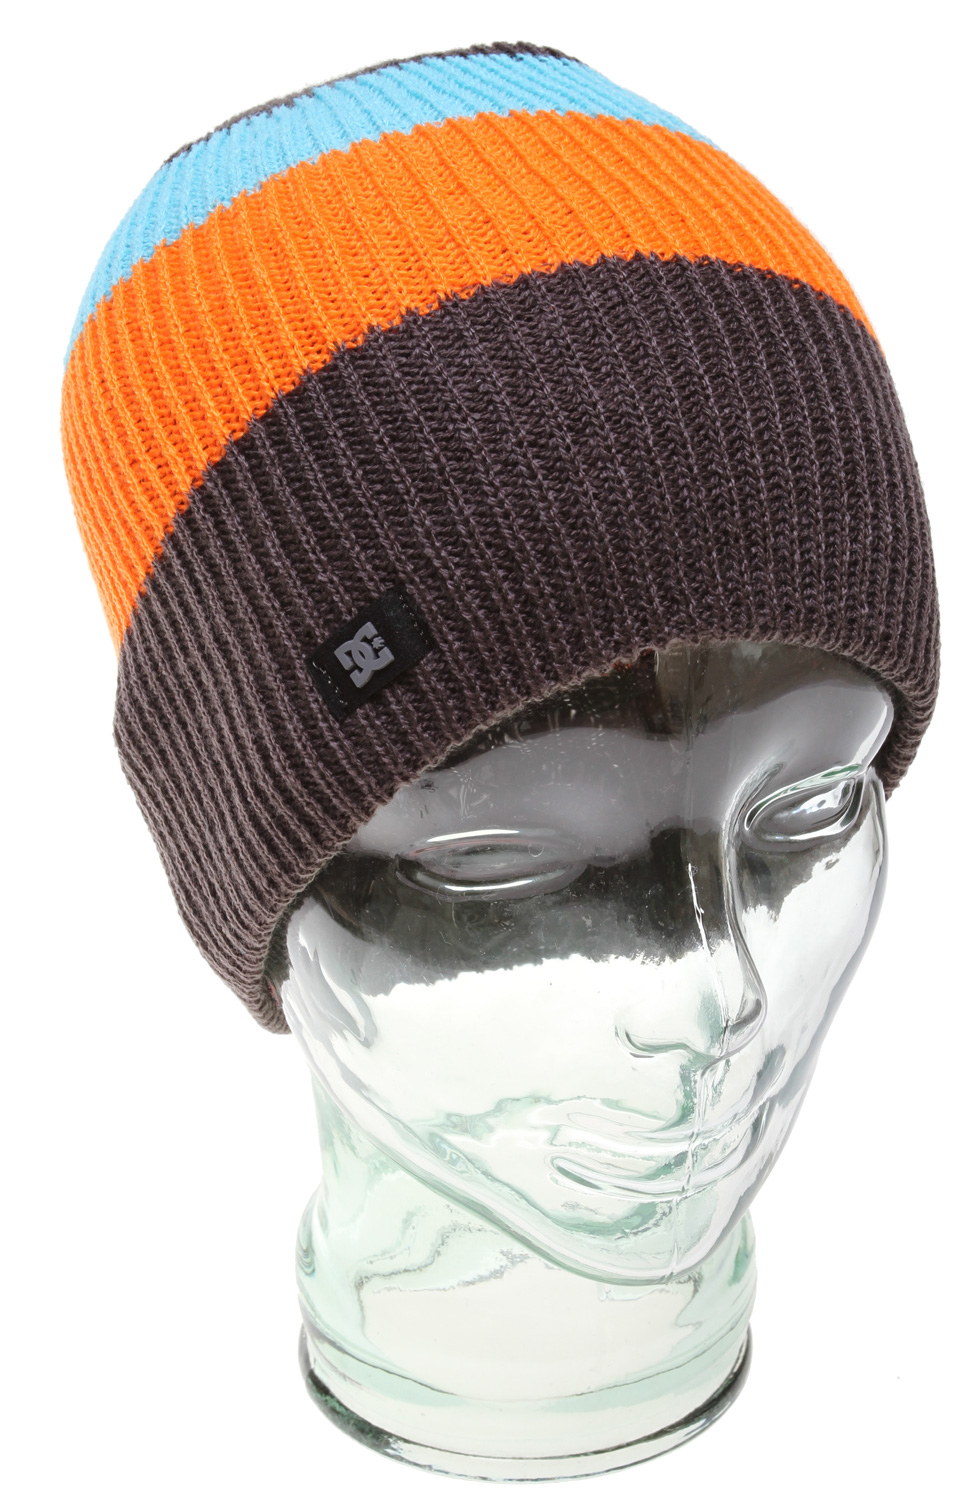 Standard fit beanie. 100% acrylicKey Features of the DC Yepito Beanie: Standard fit beanie 100% acrylic - $15.95